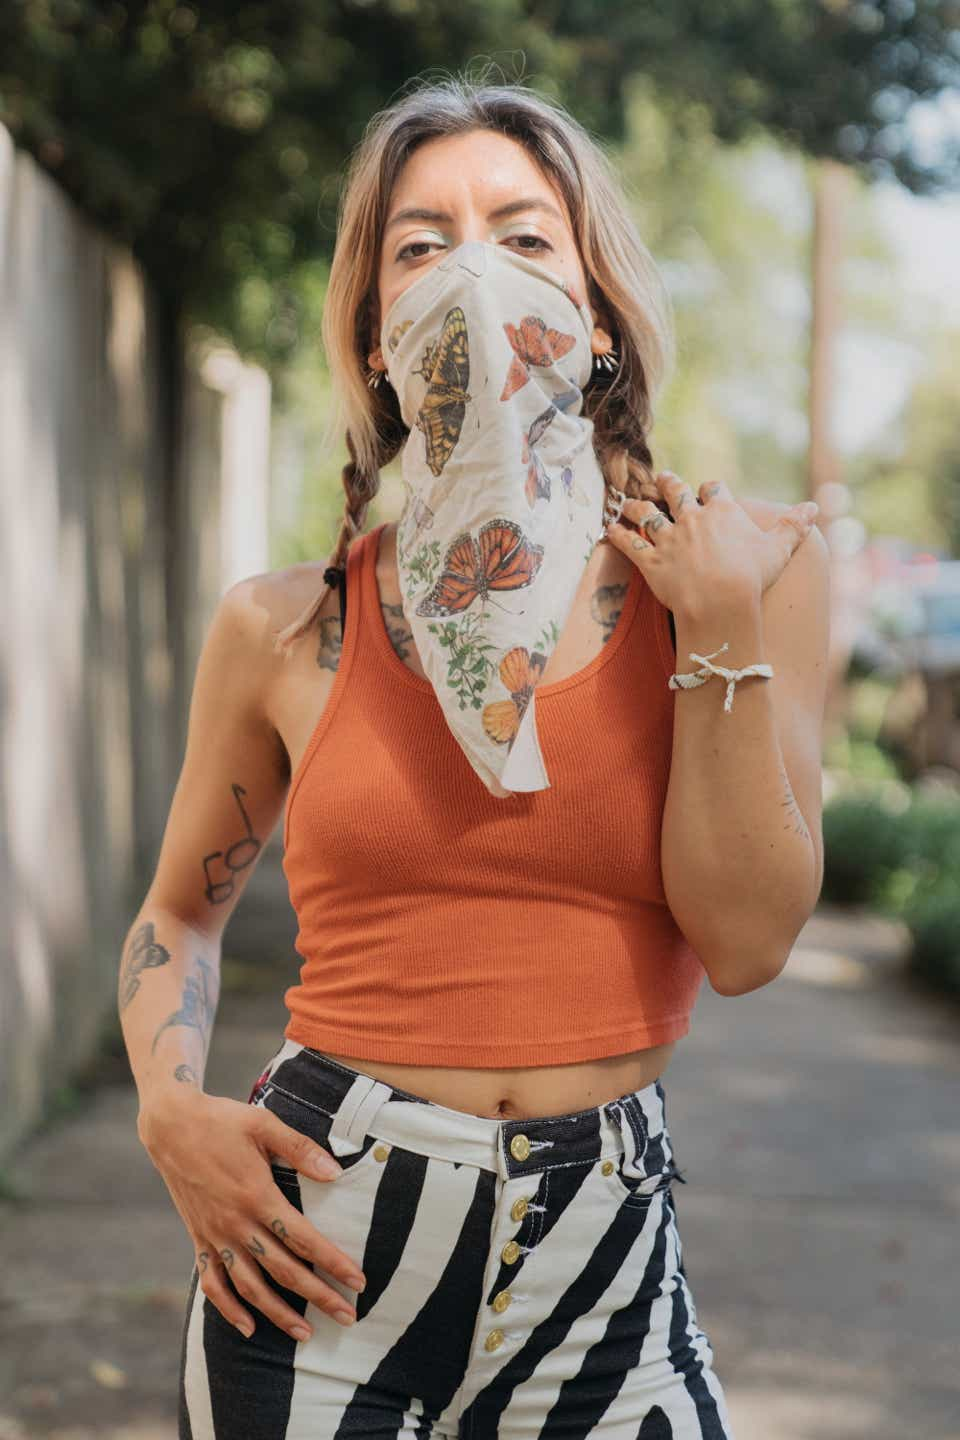 Alynda is wearing a butterfly-covered bandana as a mask with an orange tank top and zebra-print pants.